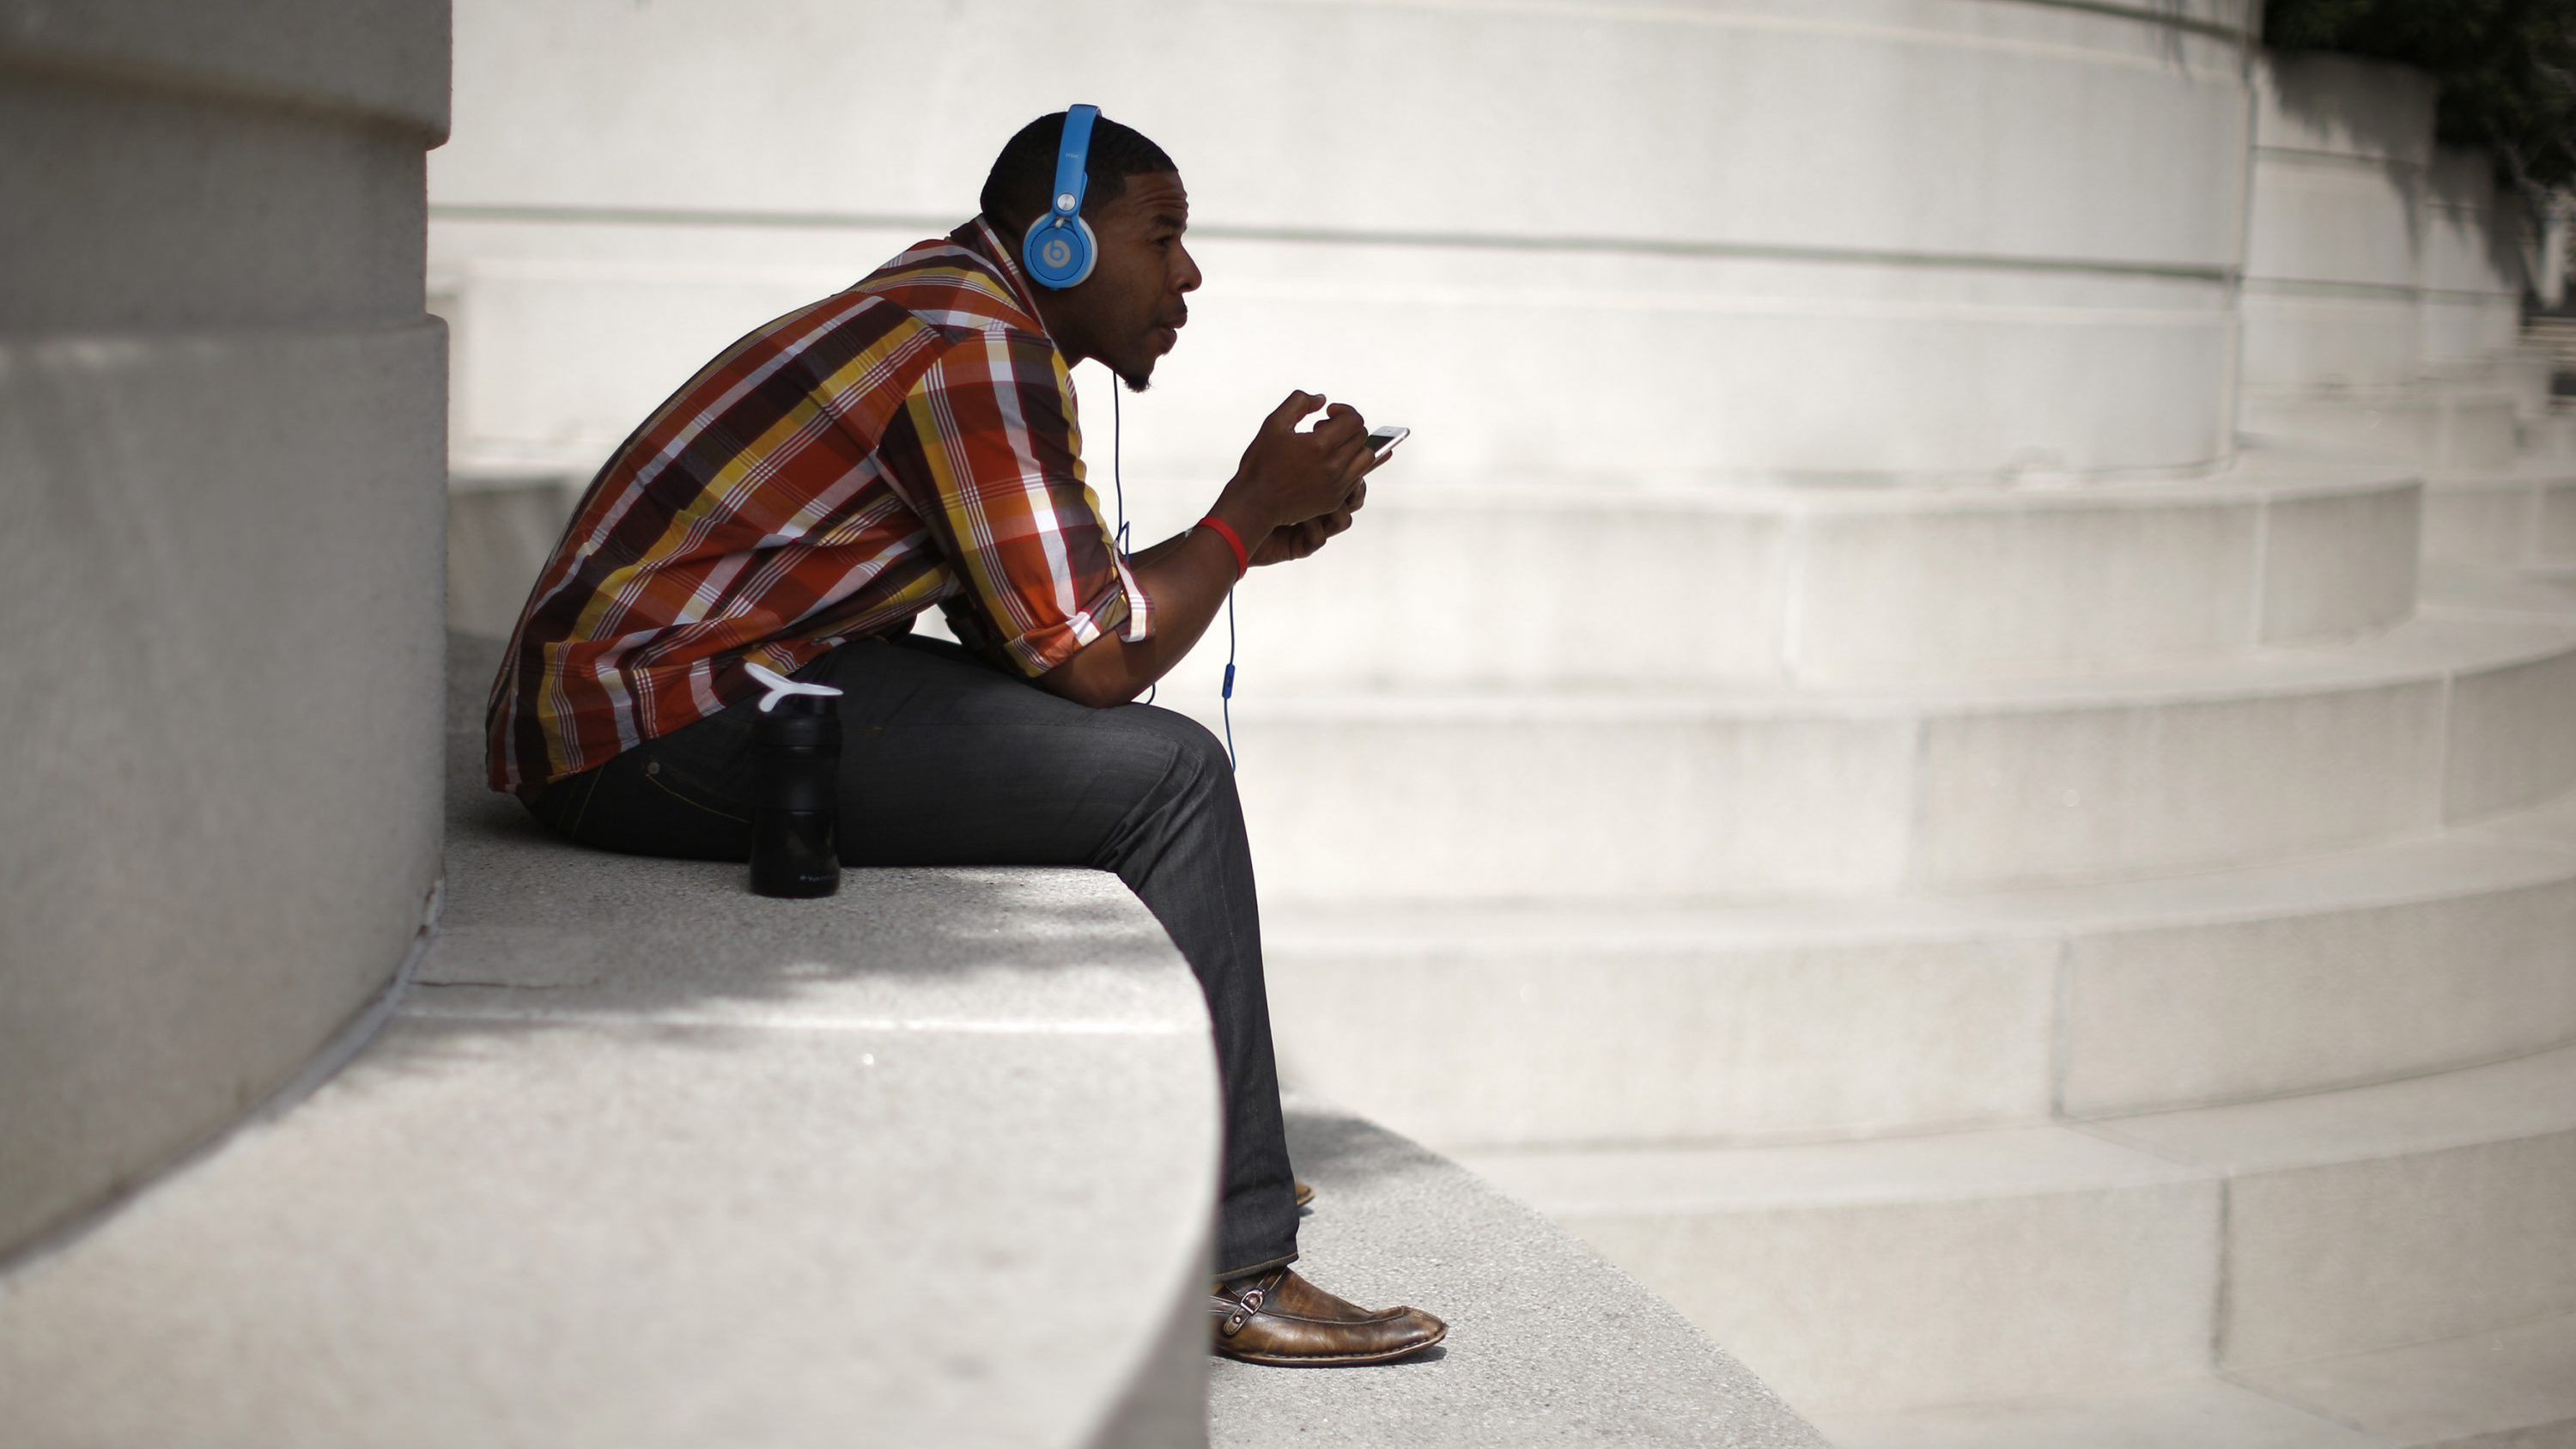 A man with Beats headphones listens to music on an iPhone in Los Angeles, California March 10, 2015.